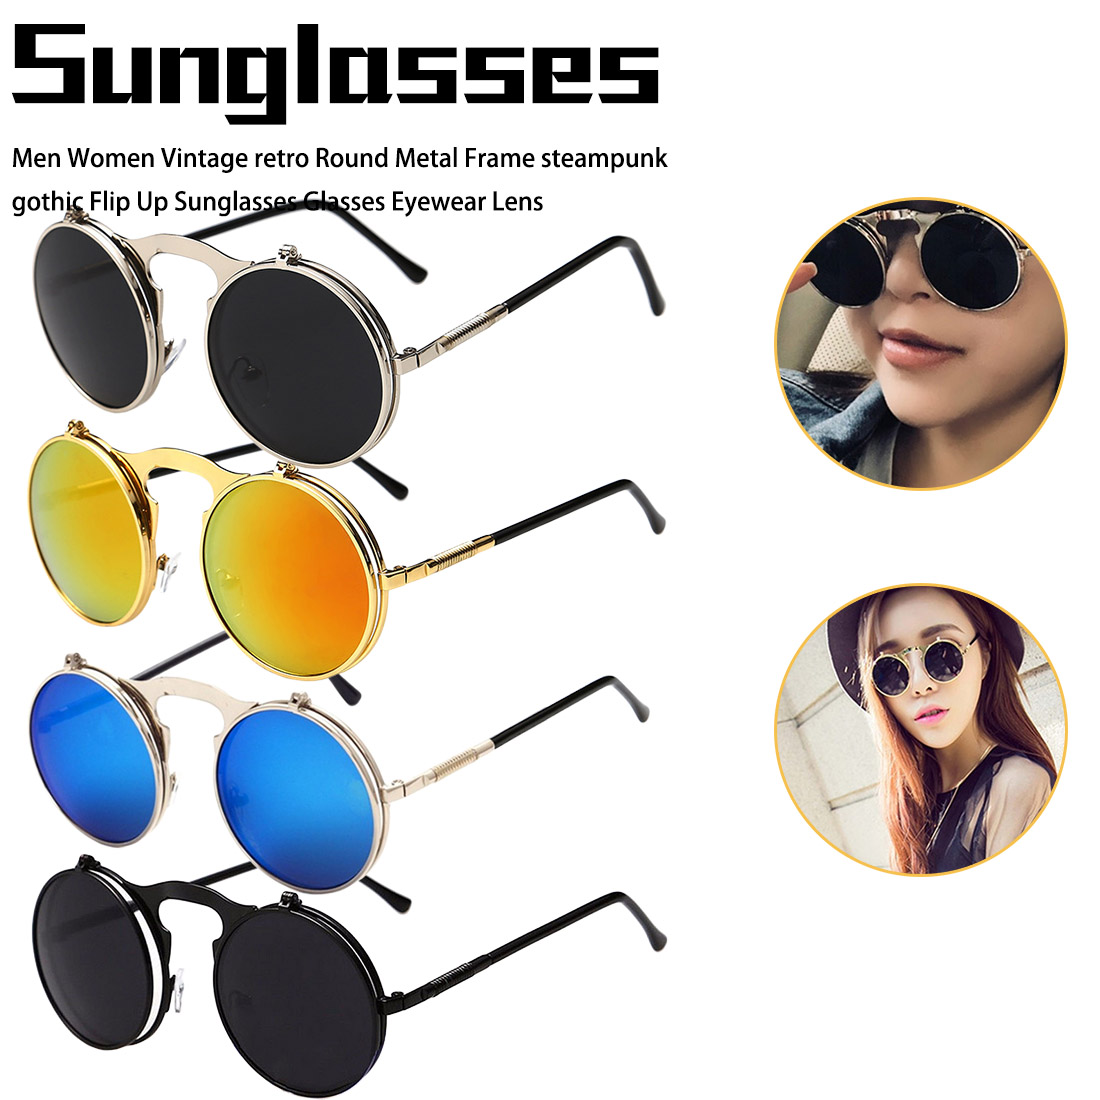 Vintage round steampunk sunglasses Men and Woman small round flip up sunglasses women retro metal silver cheap uv400 in Women 39 s Sunglasses from Apparel Accessories